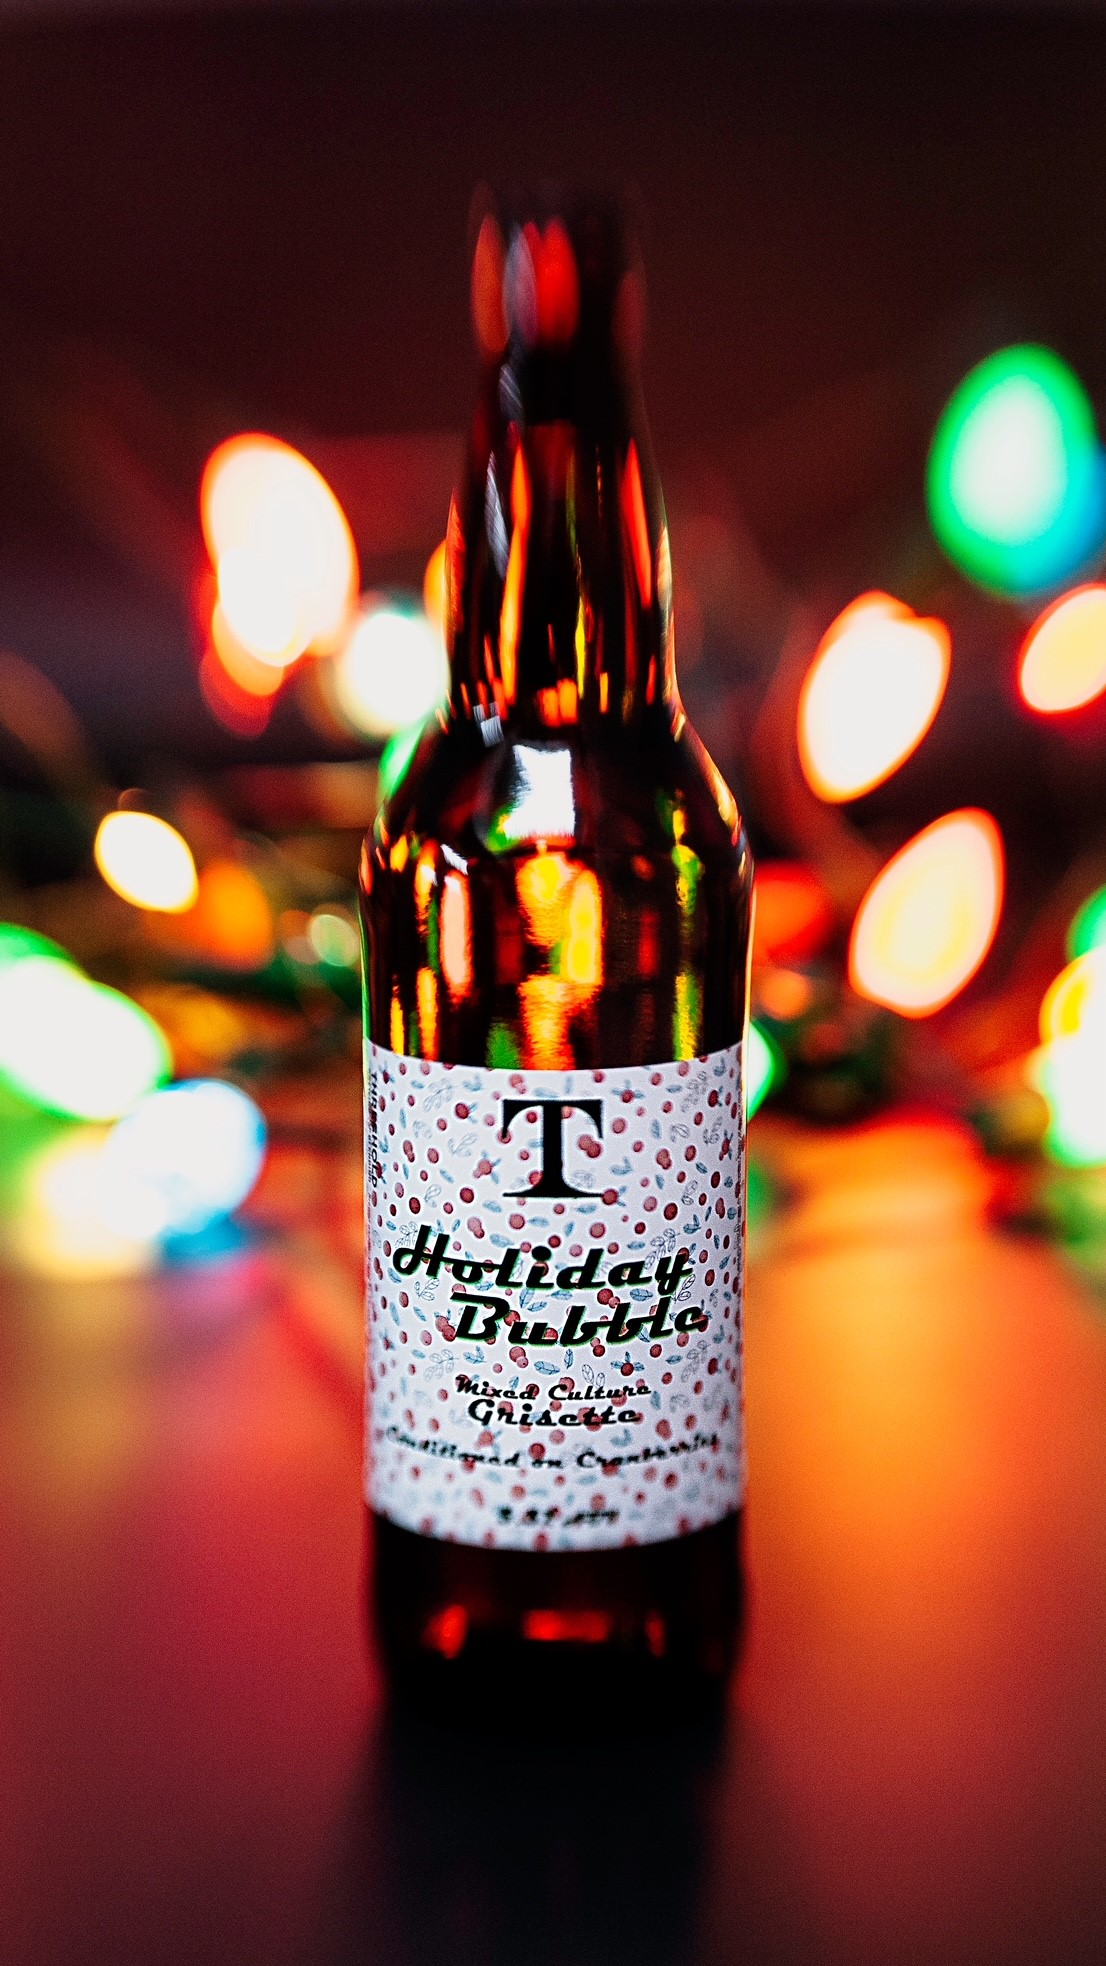 image of Holiday Bubble courtesy of Threshold Brewing